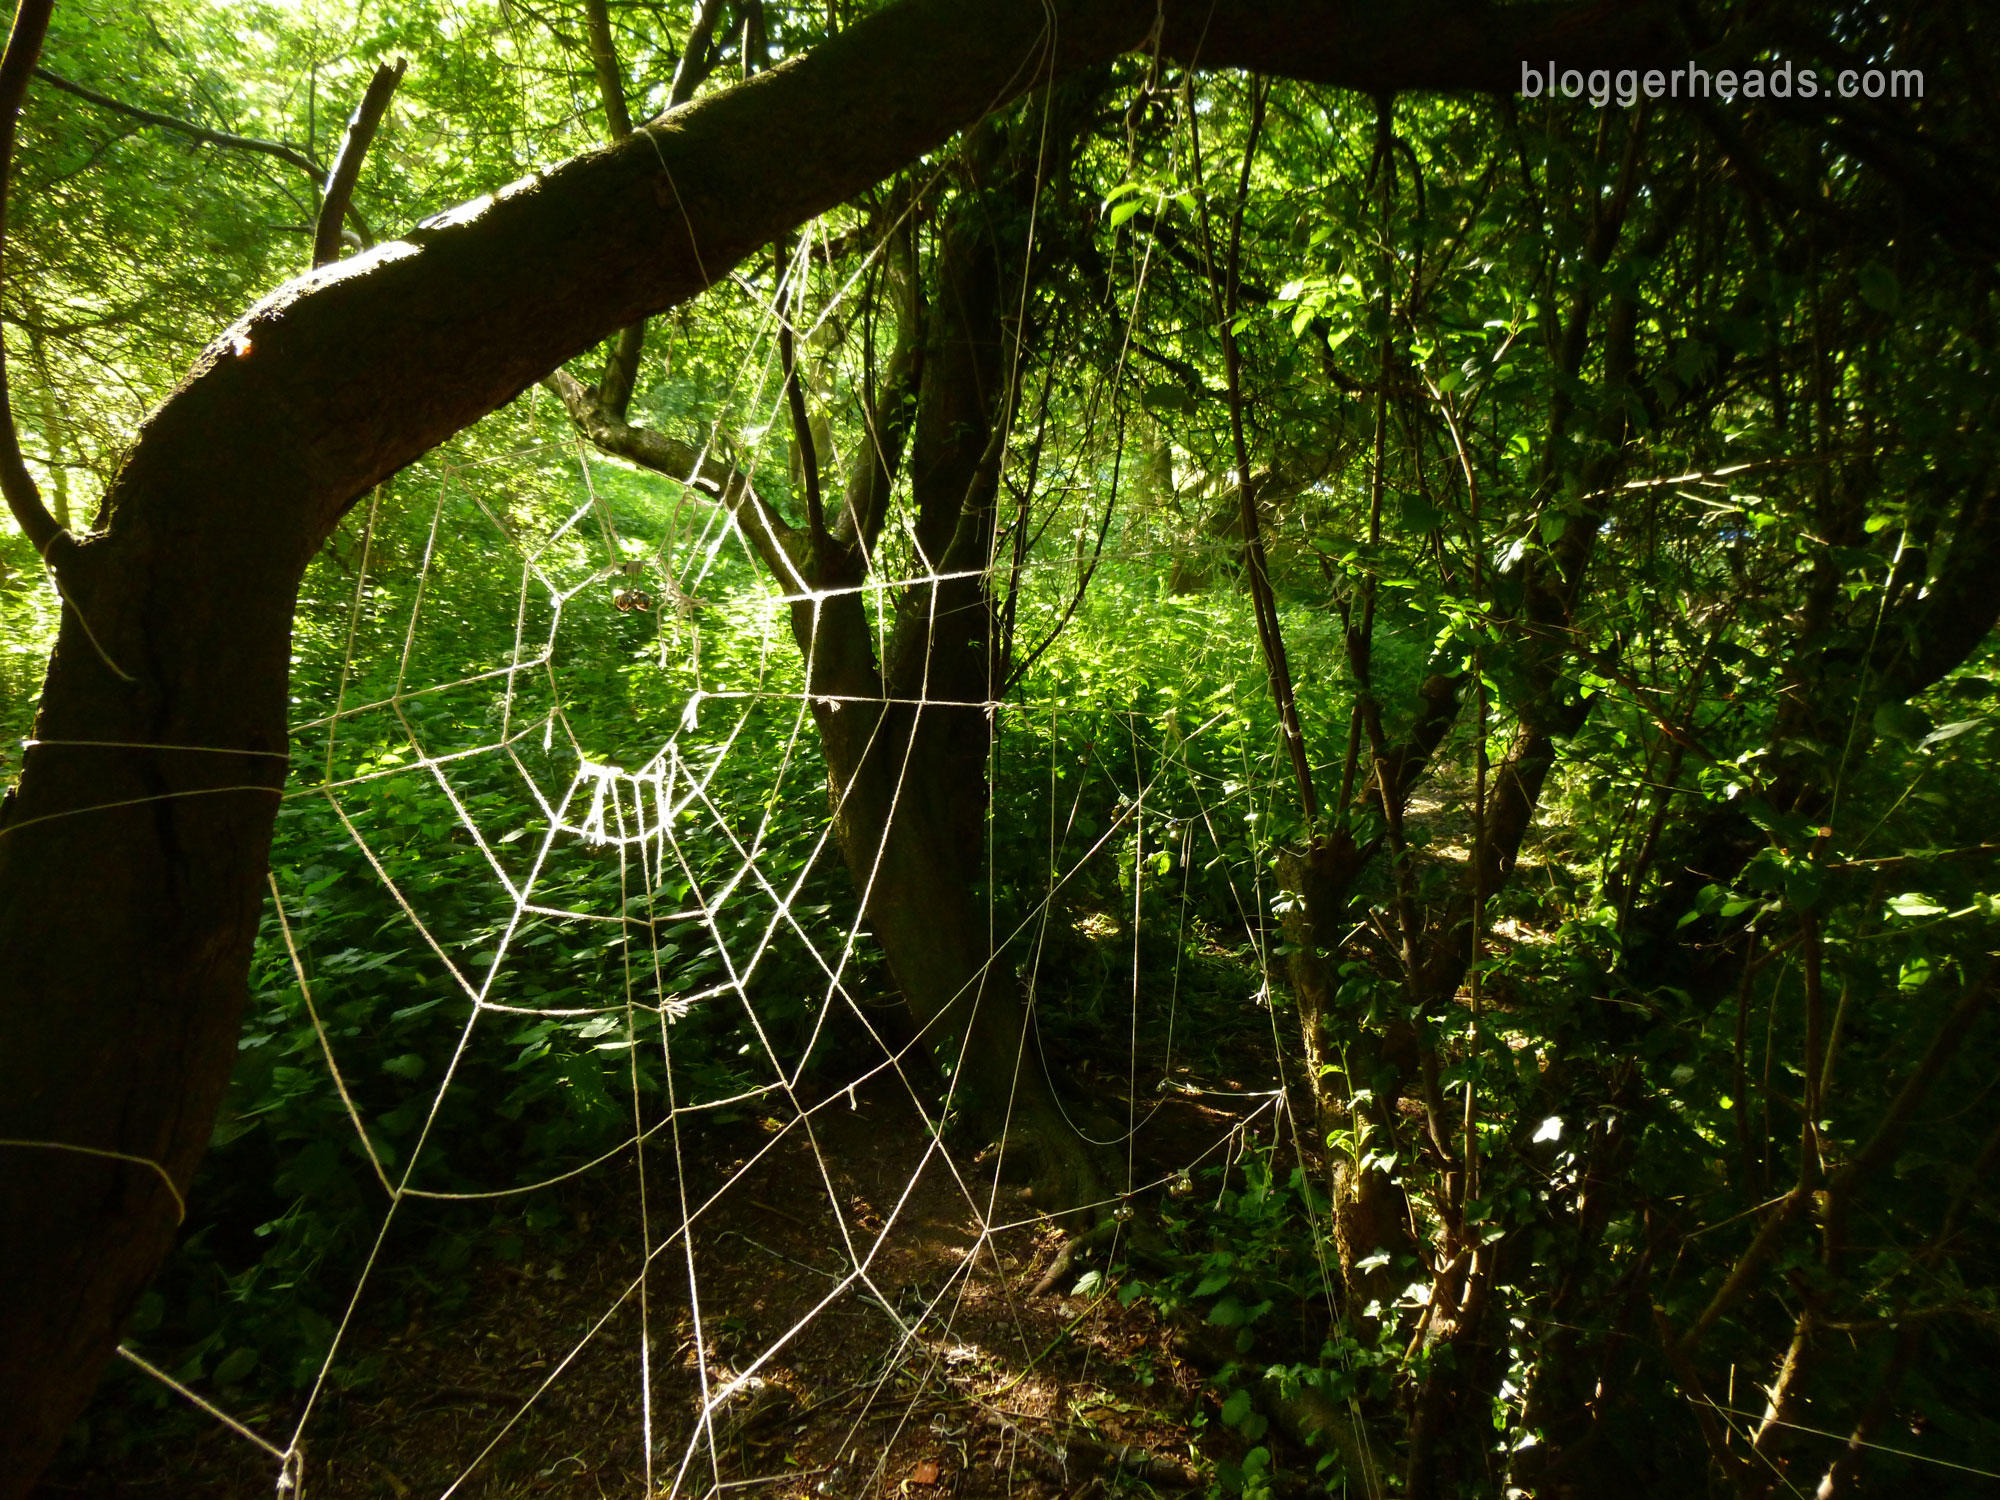 Detail Spider Web Obstacle